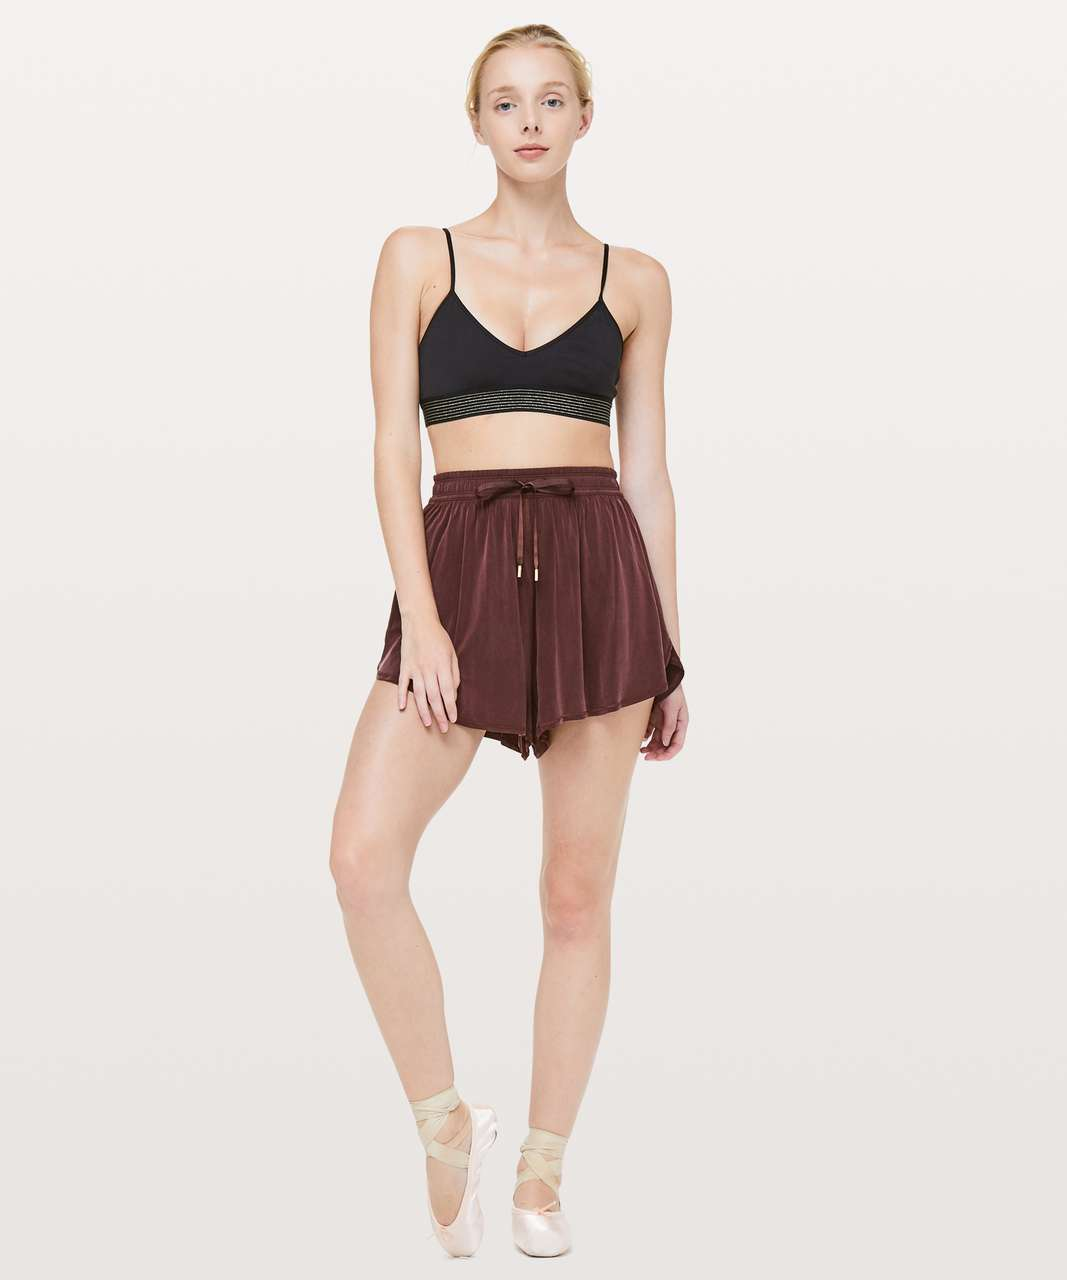 "Lululemon Principal Dancer Short *3"" - Midnight Maroon"